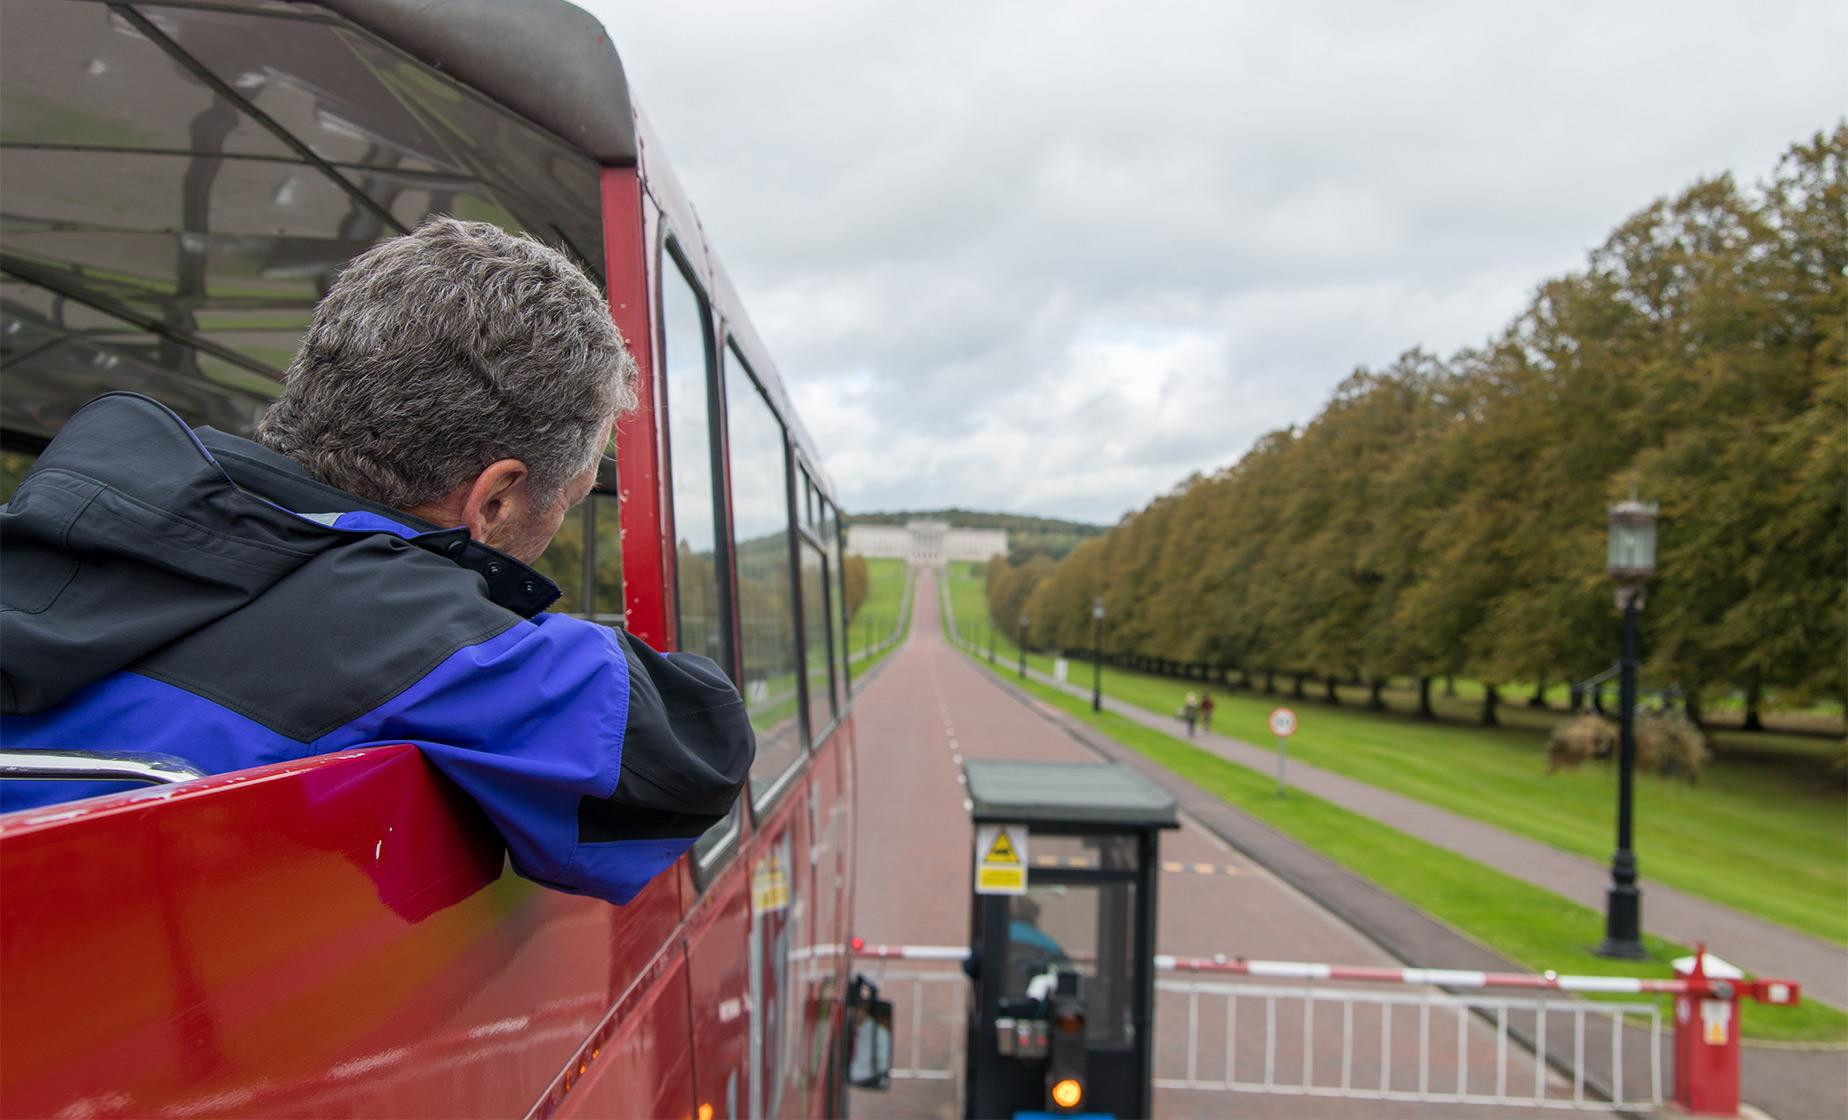 Belfast City Sightseeing Hop On Hop Off Bus Shore Excursion (Titanic Quarter)